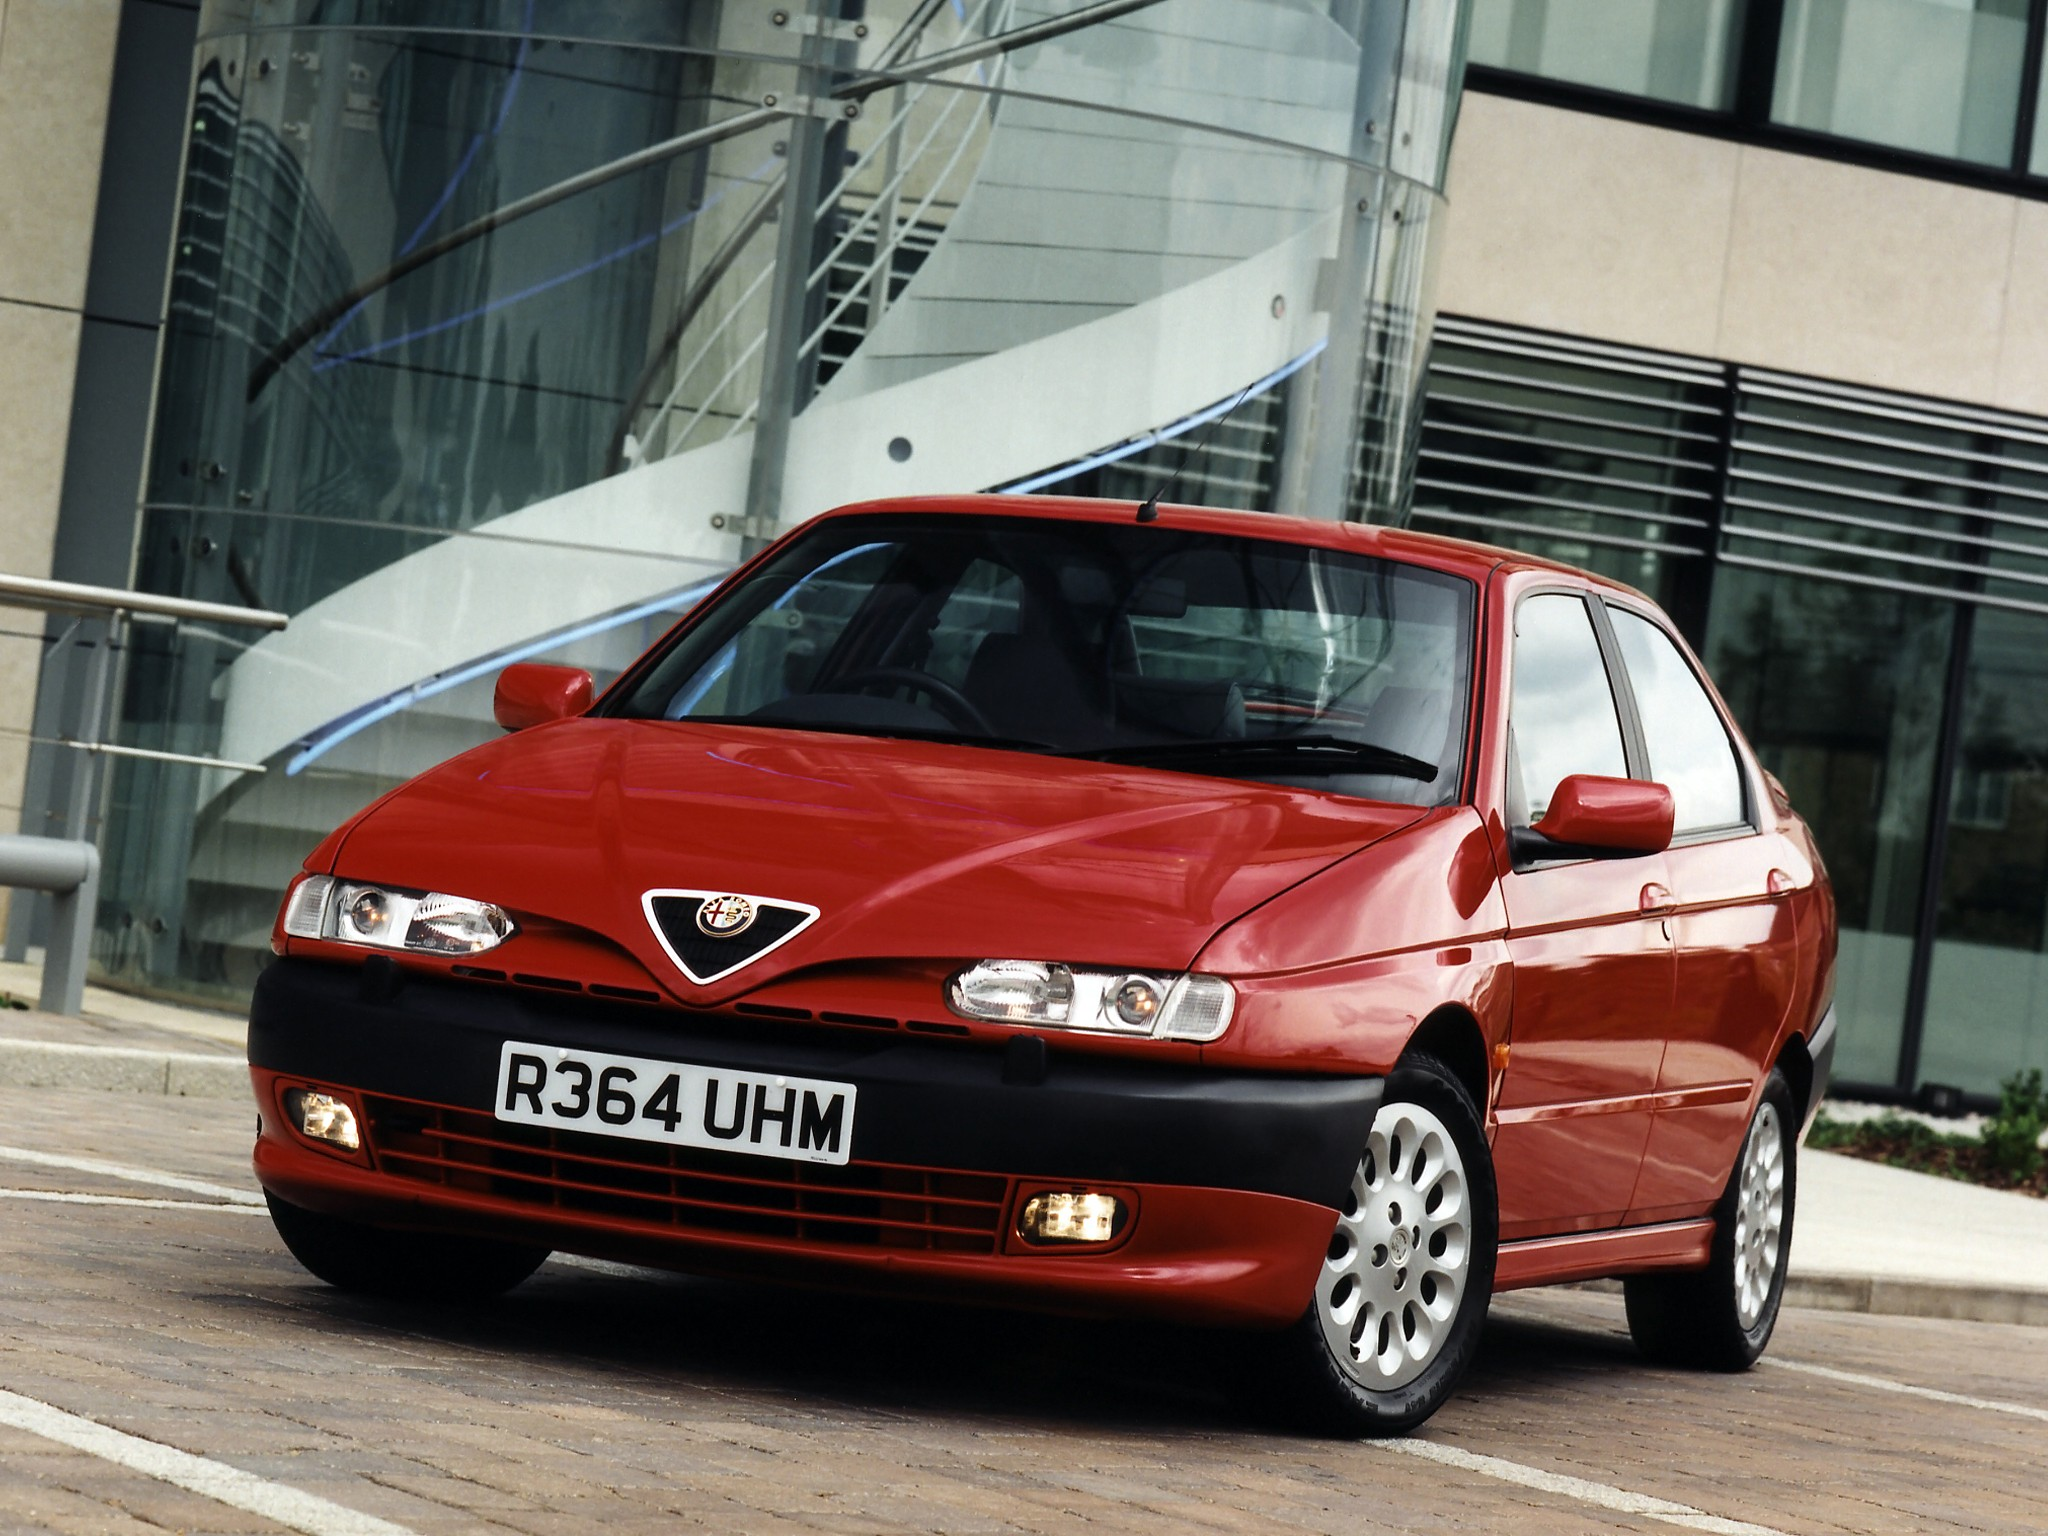 Upcoming Car Shows >> ALFA ROMEO 146 specs - 1995, 1996, 1997, 1998, 1999, 2000 - autoevolution